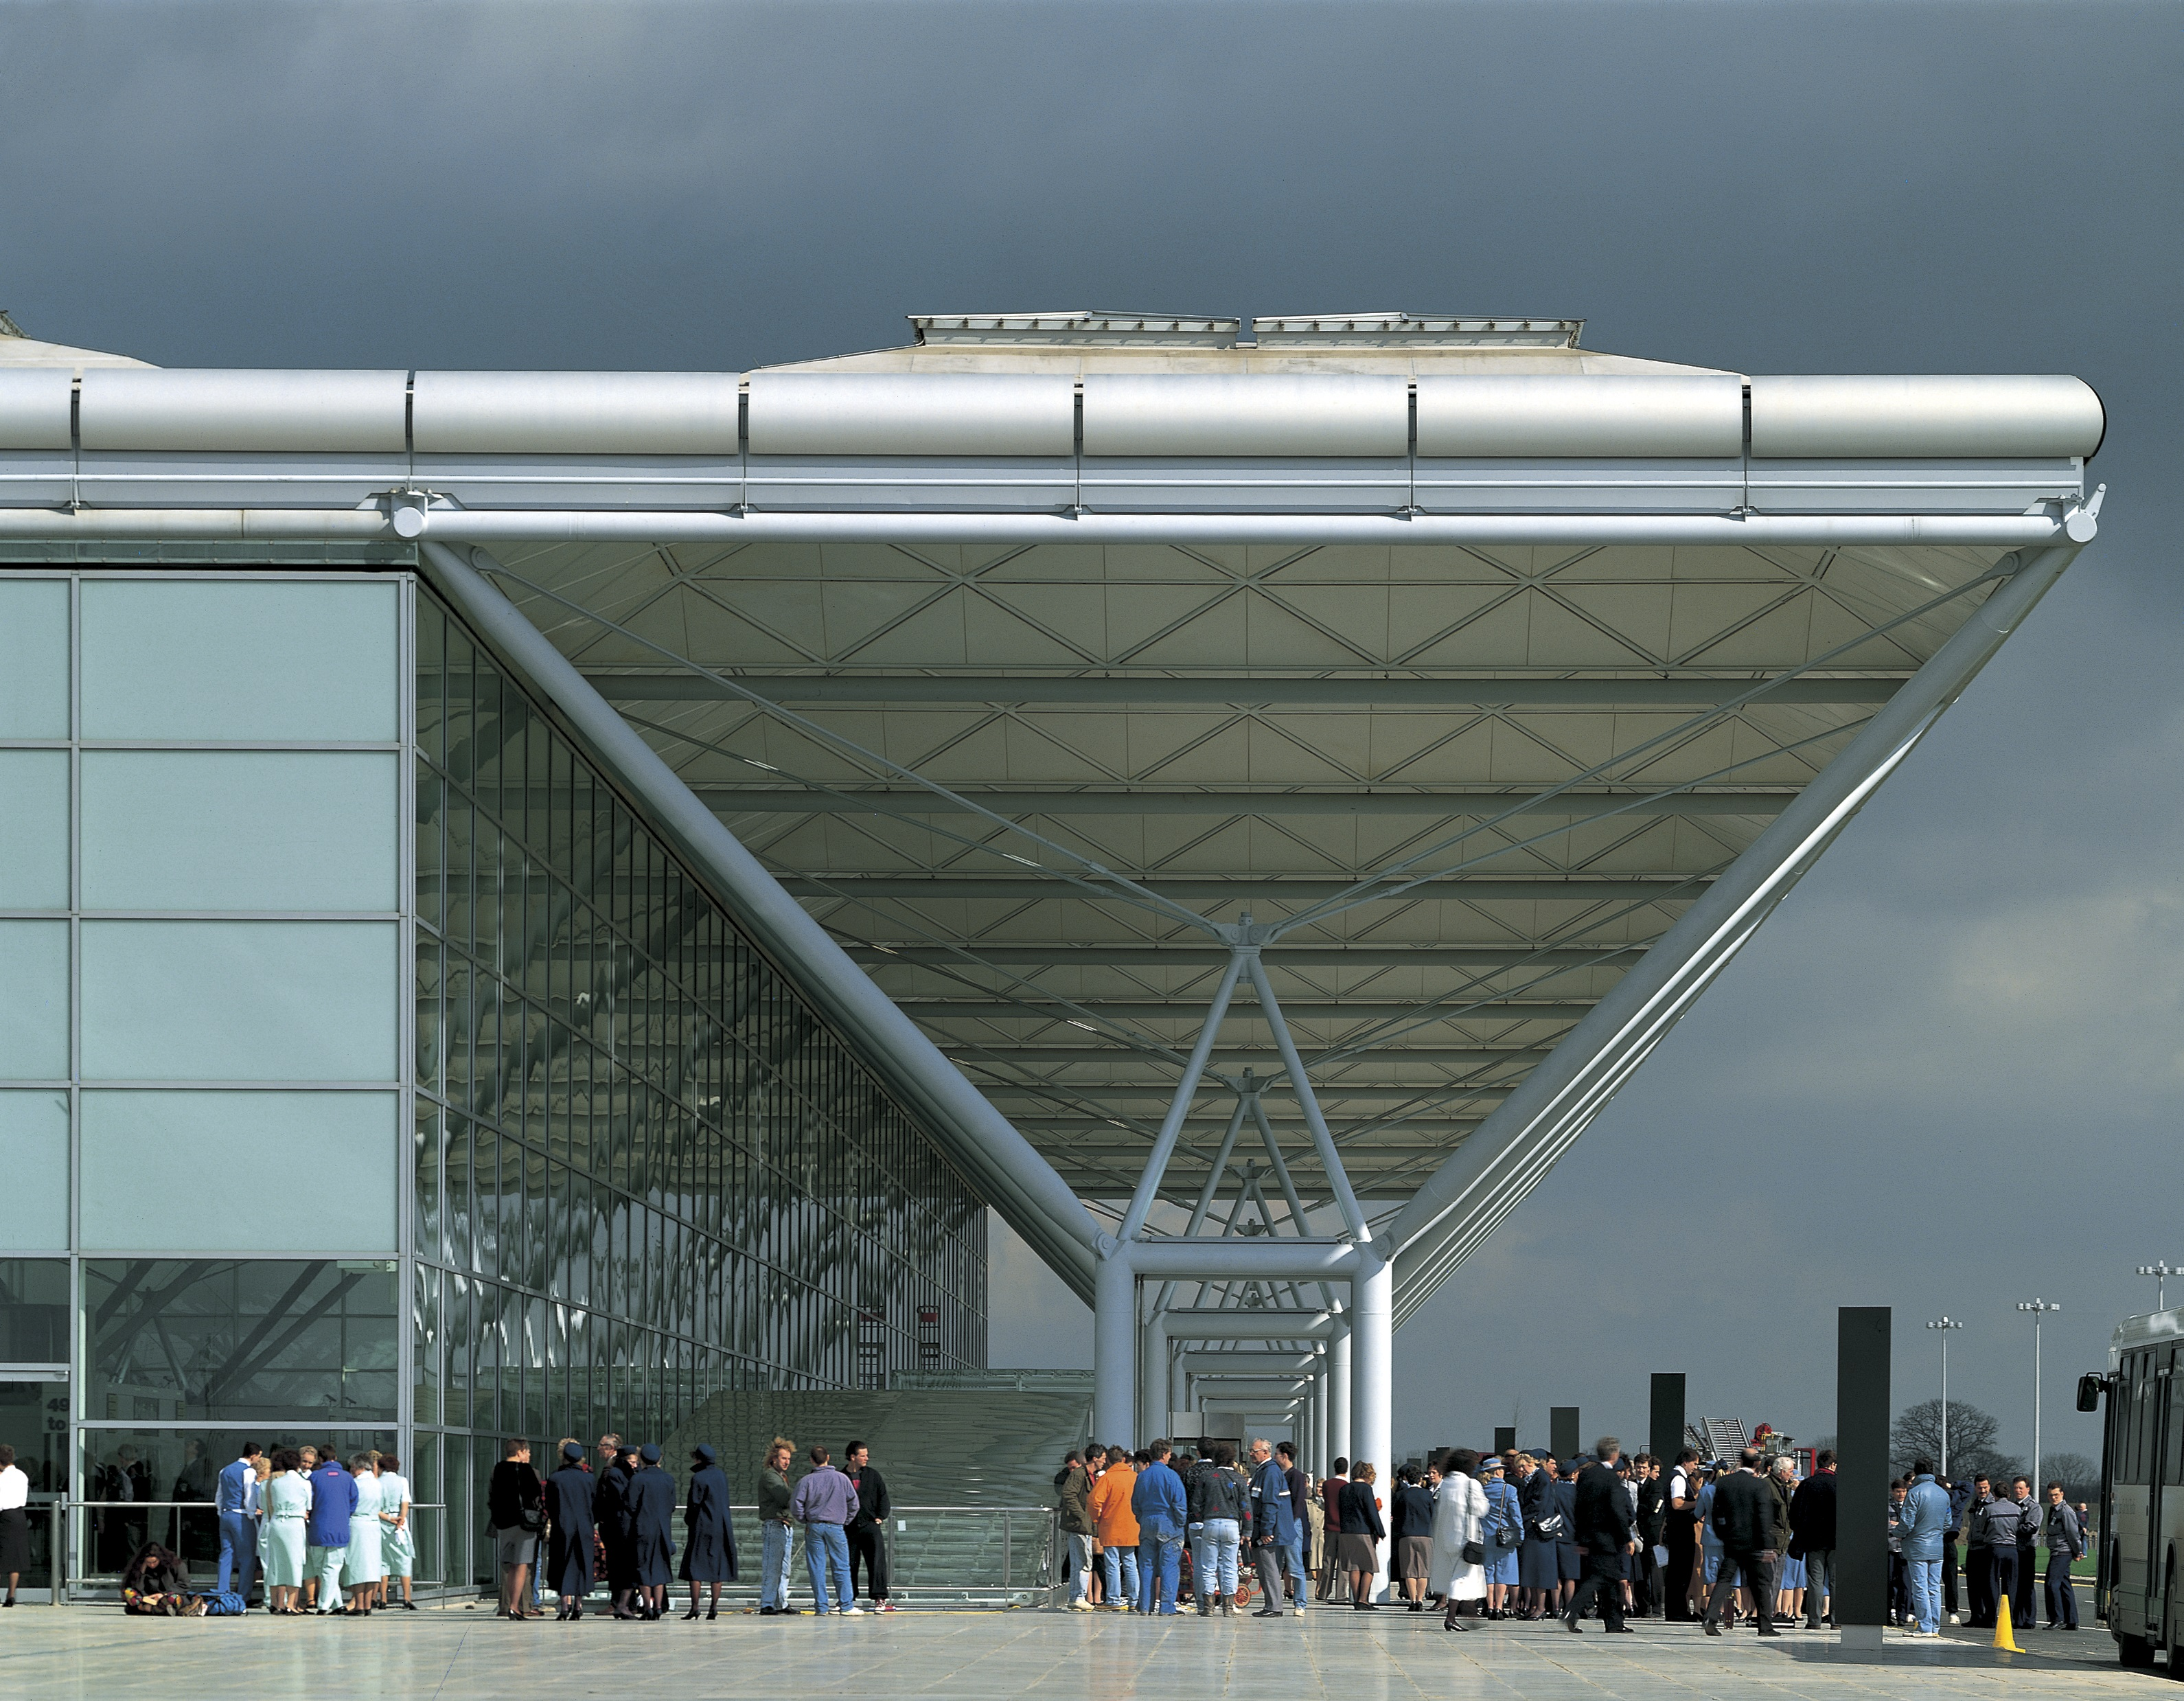 Stansted Airport door Foster + Partners. Beeld: Ken Kirkwood